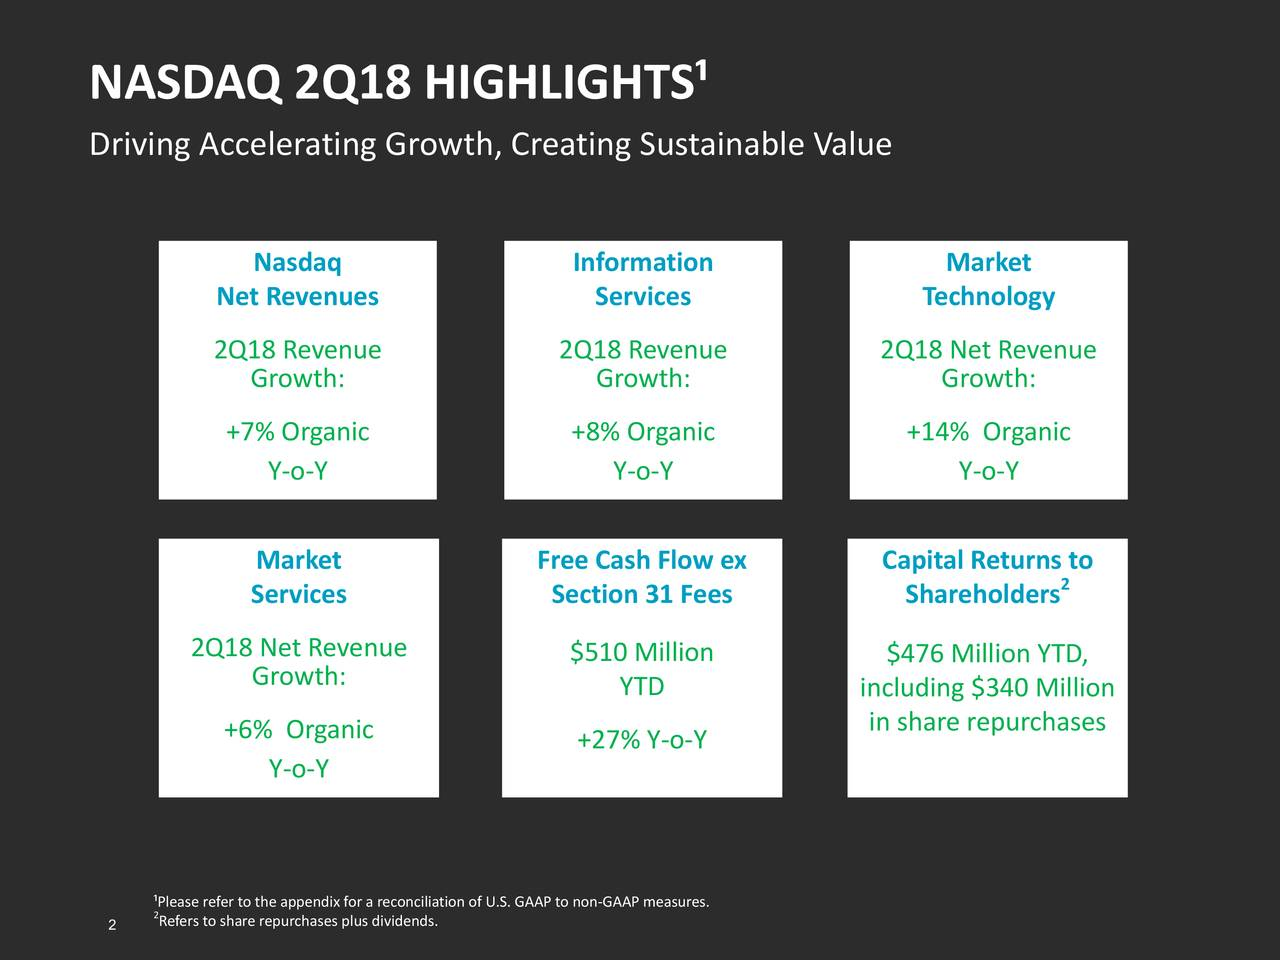 Driving Accelerating Growth, Creating Sustainable Value Nasdaq Information Market Net Revenues Services Technology 2Q18 Revenue 2Q18 Revenue 2Q18 Net Revenue Growth: Growth: Growth: +7% Organic +8% Organic +14% Organic Y-o-Y Y-o-Y Y-o-Y Market Free Cash Flow ex Capital Returns to Services Section 31 Fees Shareholders2 2Q18 Net Revenue $510 Million $476 Million YTD, Growth: YTD including $340 Million +6% Organic in share repurchases +27% Y-o-Y Y-o-Y ¹Please refer to the appendix for a reconciliation of U.S. GAAP to non-GAAP measures. 2 2Refers to share repurchases plus dividends.